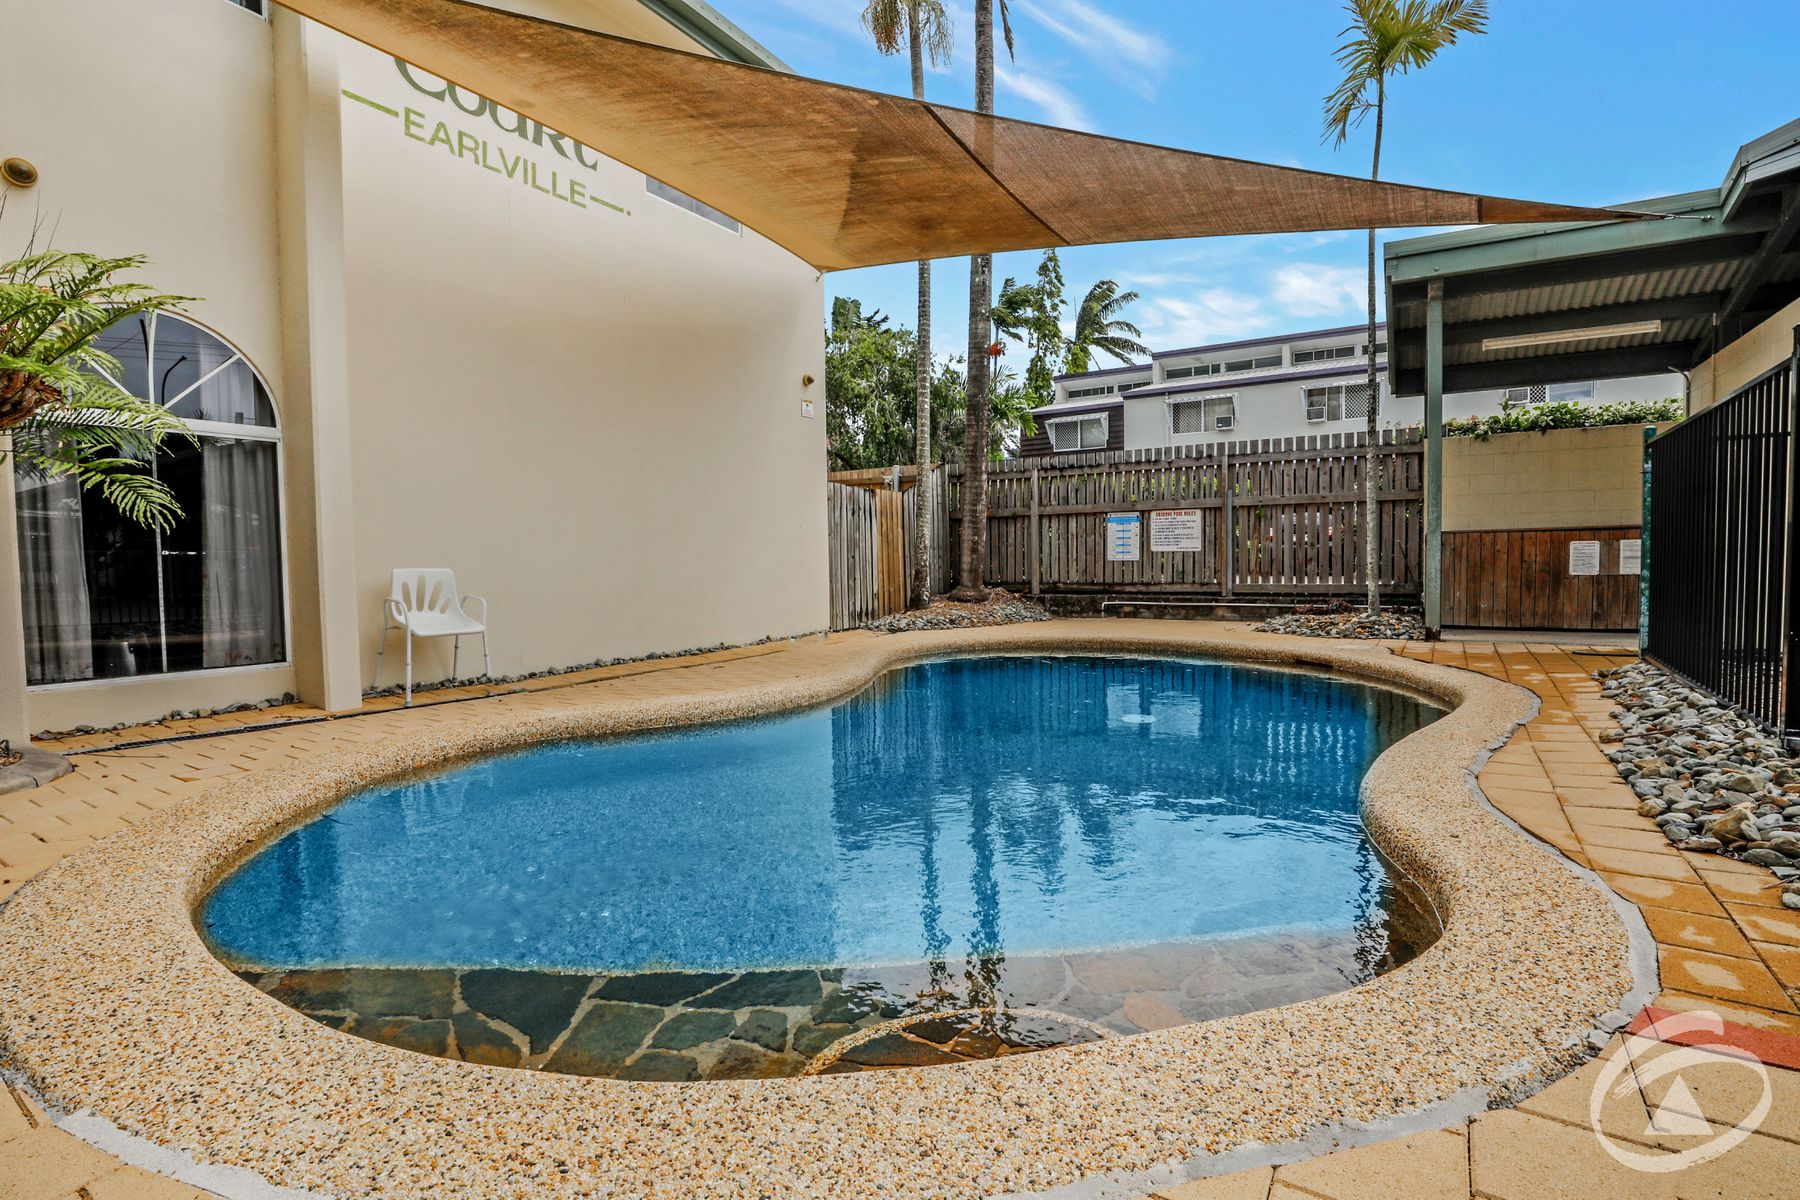 4/9 Balaclava Road, Earlville, QLD 4870